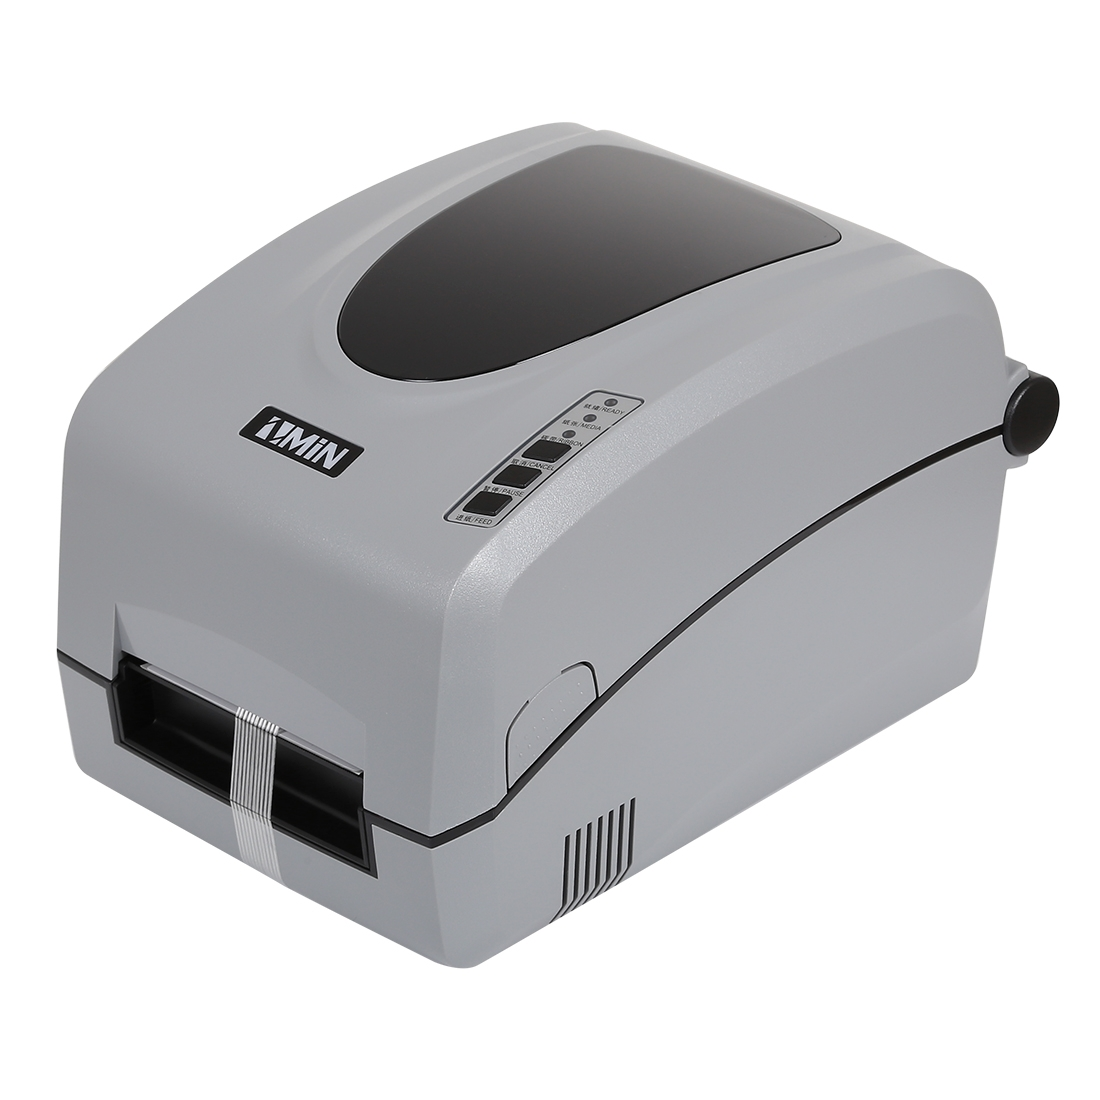 H8 Convenient USB Port Thermal Automatic Calibration Barcode Printer  Supermarket, Tea Shop, Restaurant, Max Supported Thermal Paper Size: 57*30mm